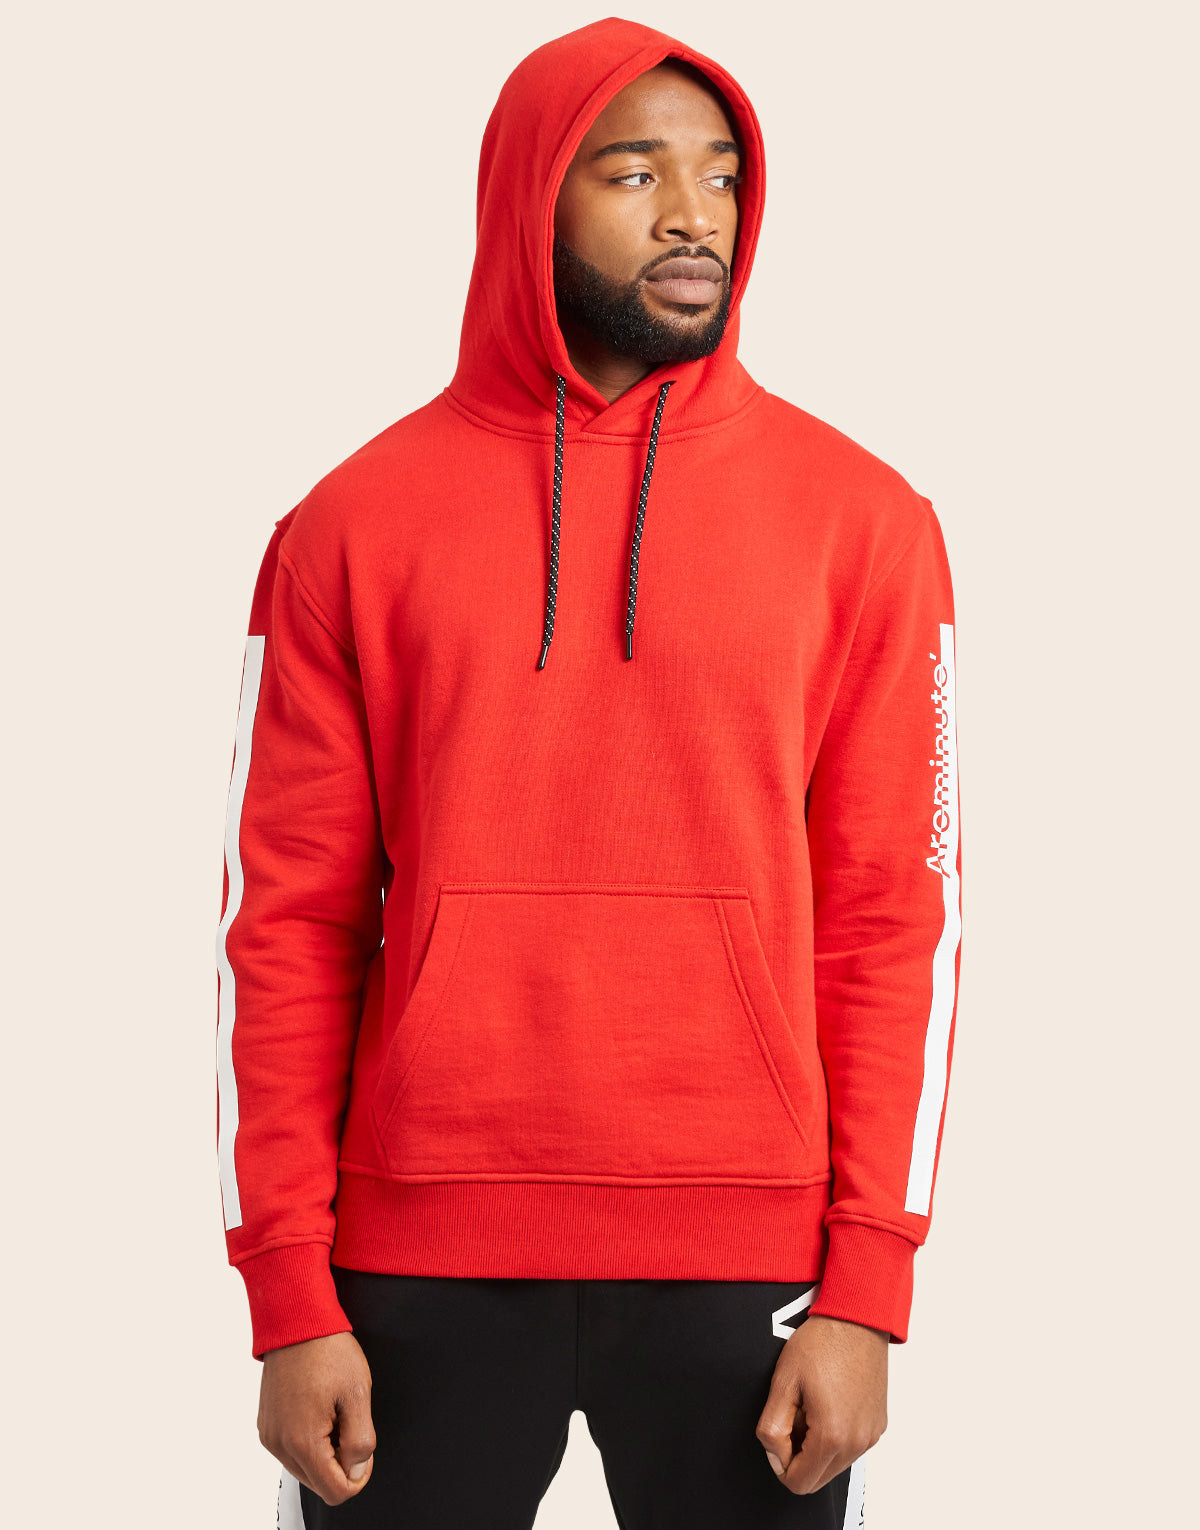 Fiction Hoodie Red - Arcminute